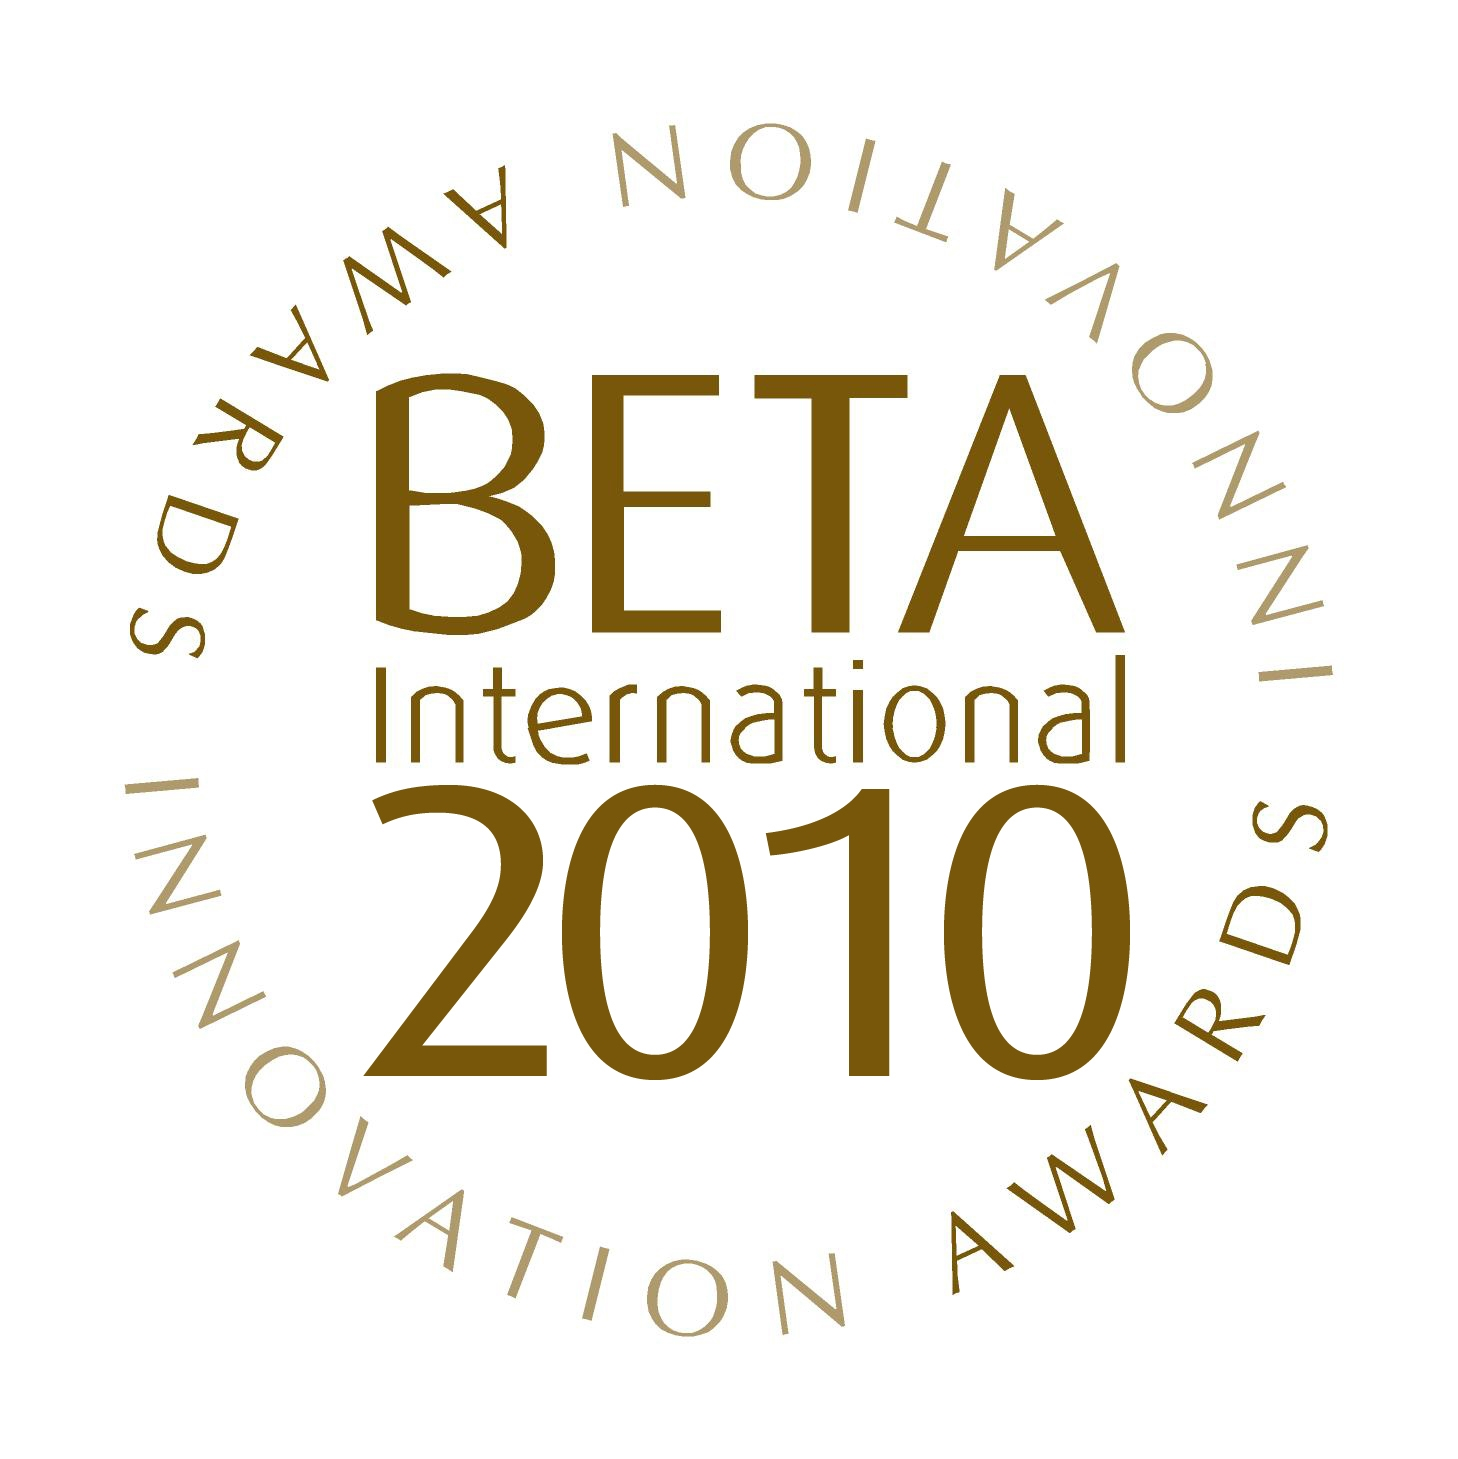 Beta_2010_award_logo.JPG